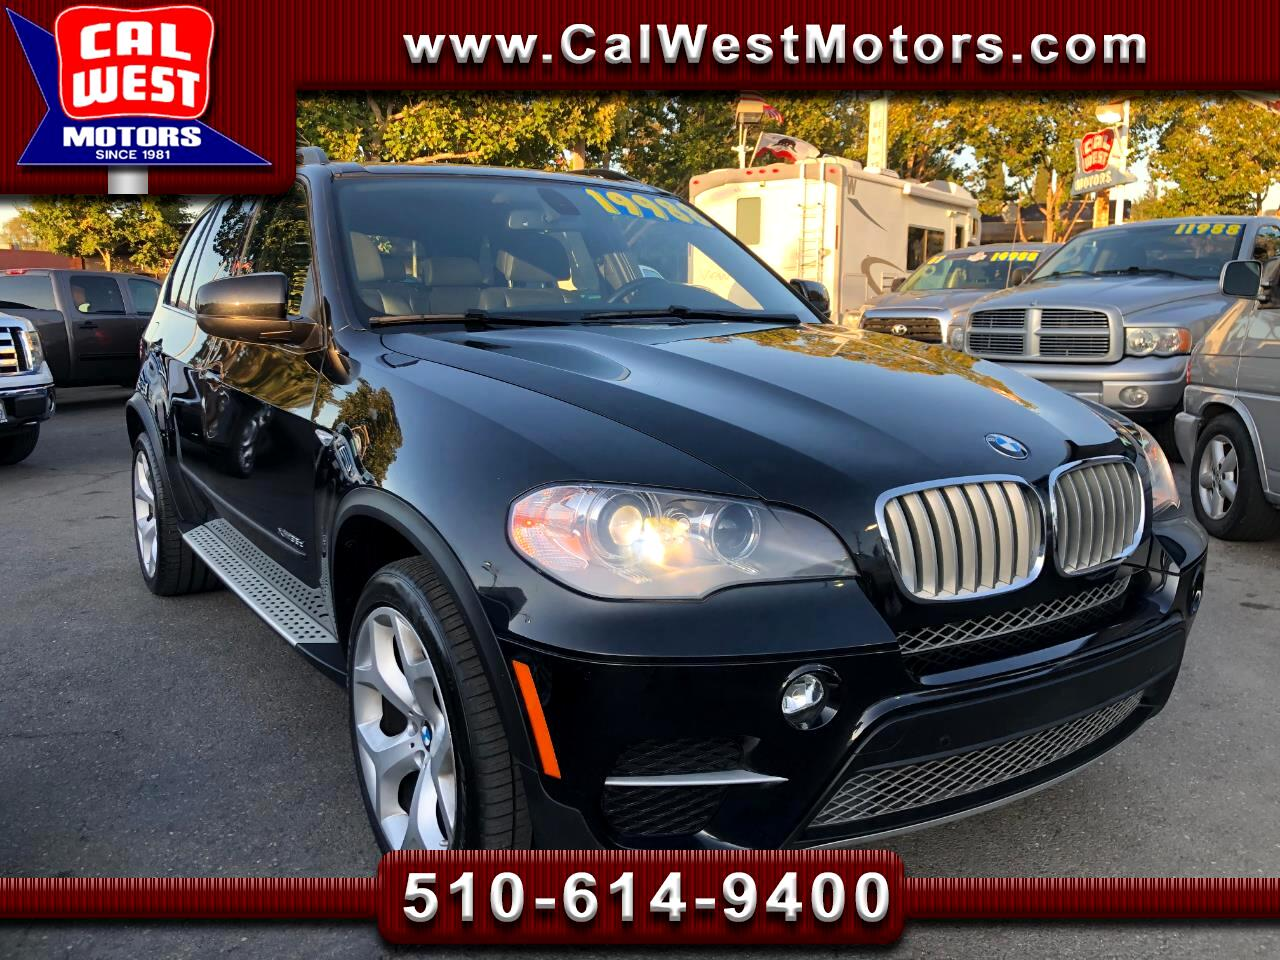 2013 BMW X5 xDrive 35d Diesel NAV 71K SuperClean GreatMtnce